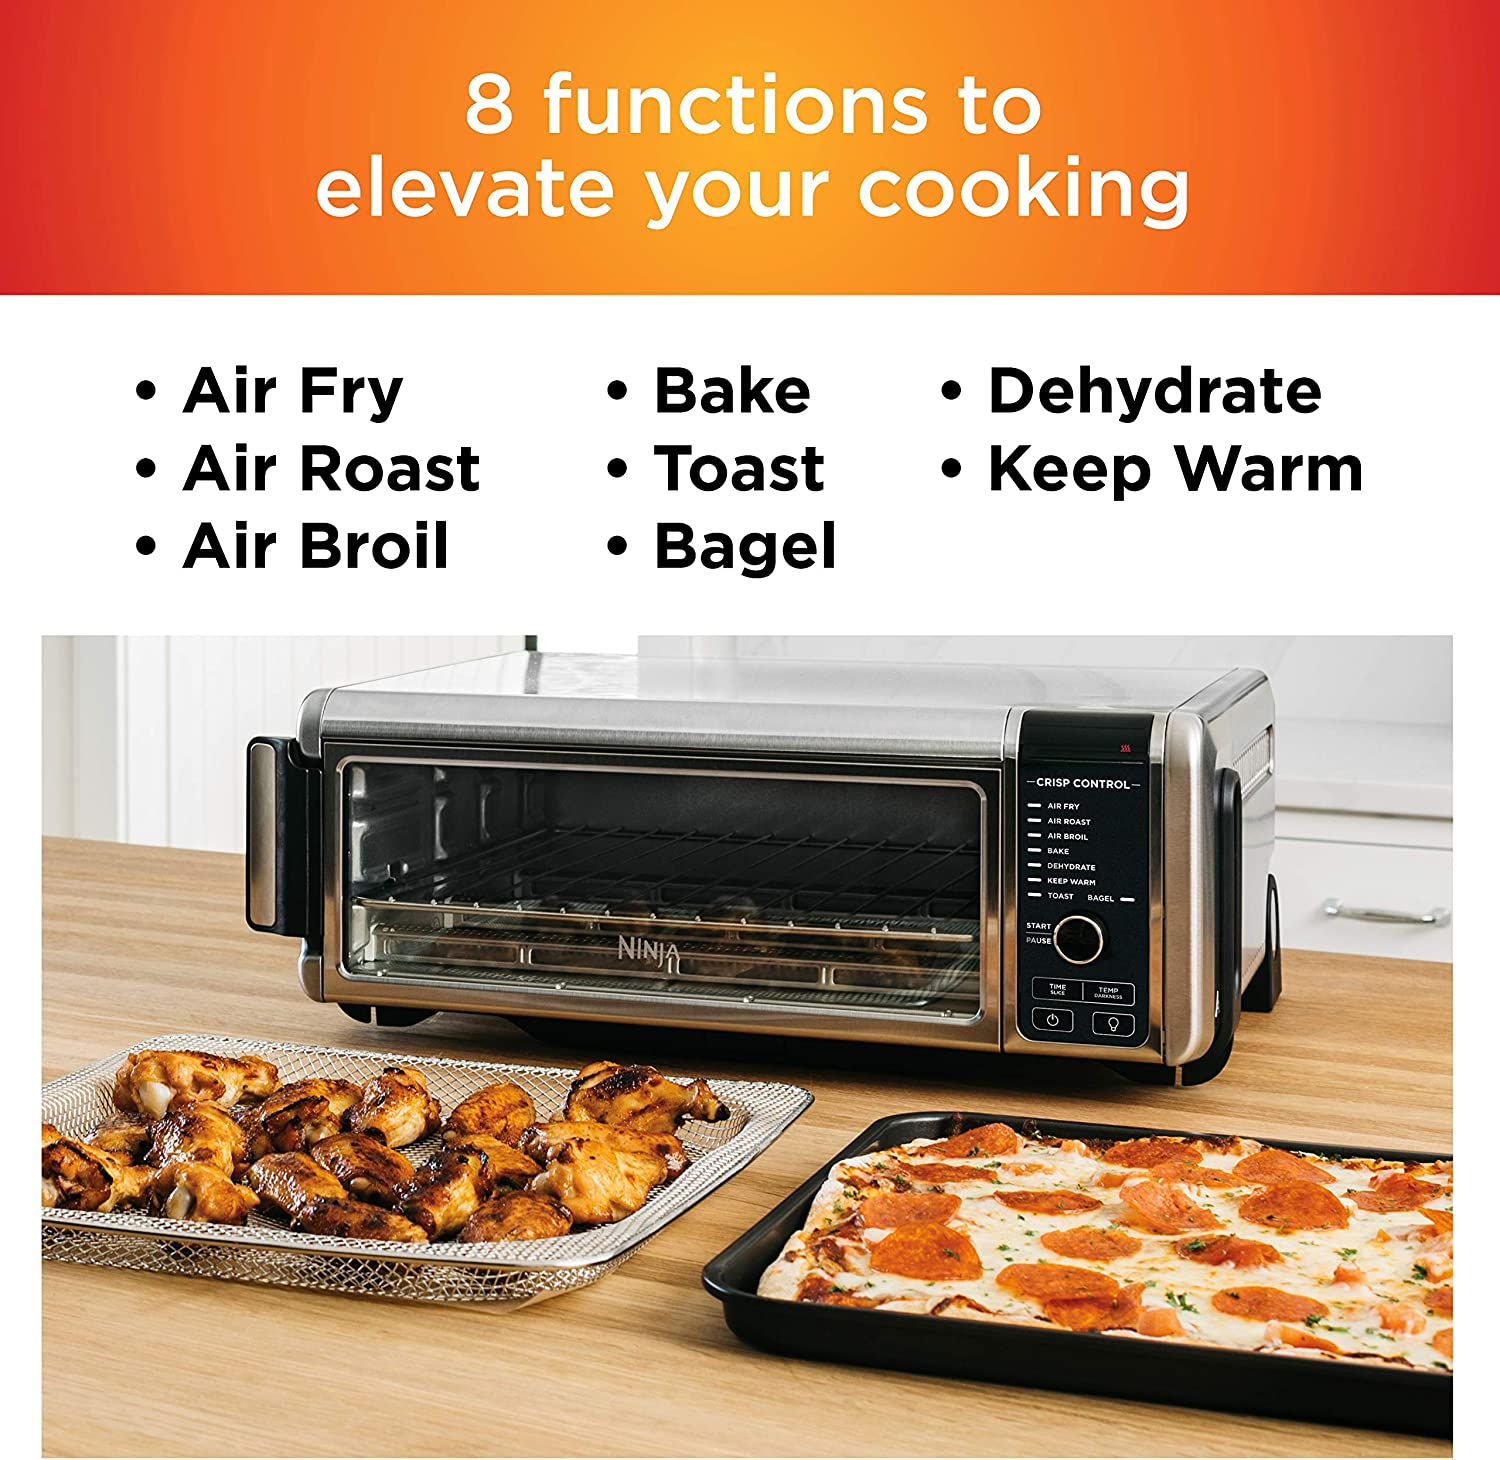 Ninja Foodi Digital Fry, Convection Oven, Toaster, Air Fryer, Flip-Away for Storage, with XL Capacity, and a Stainless Steel Finish: Kitchen & Dining